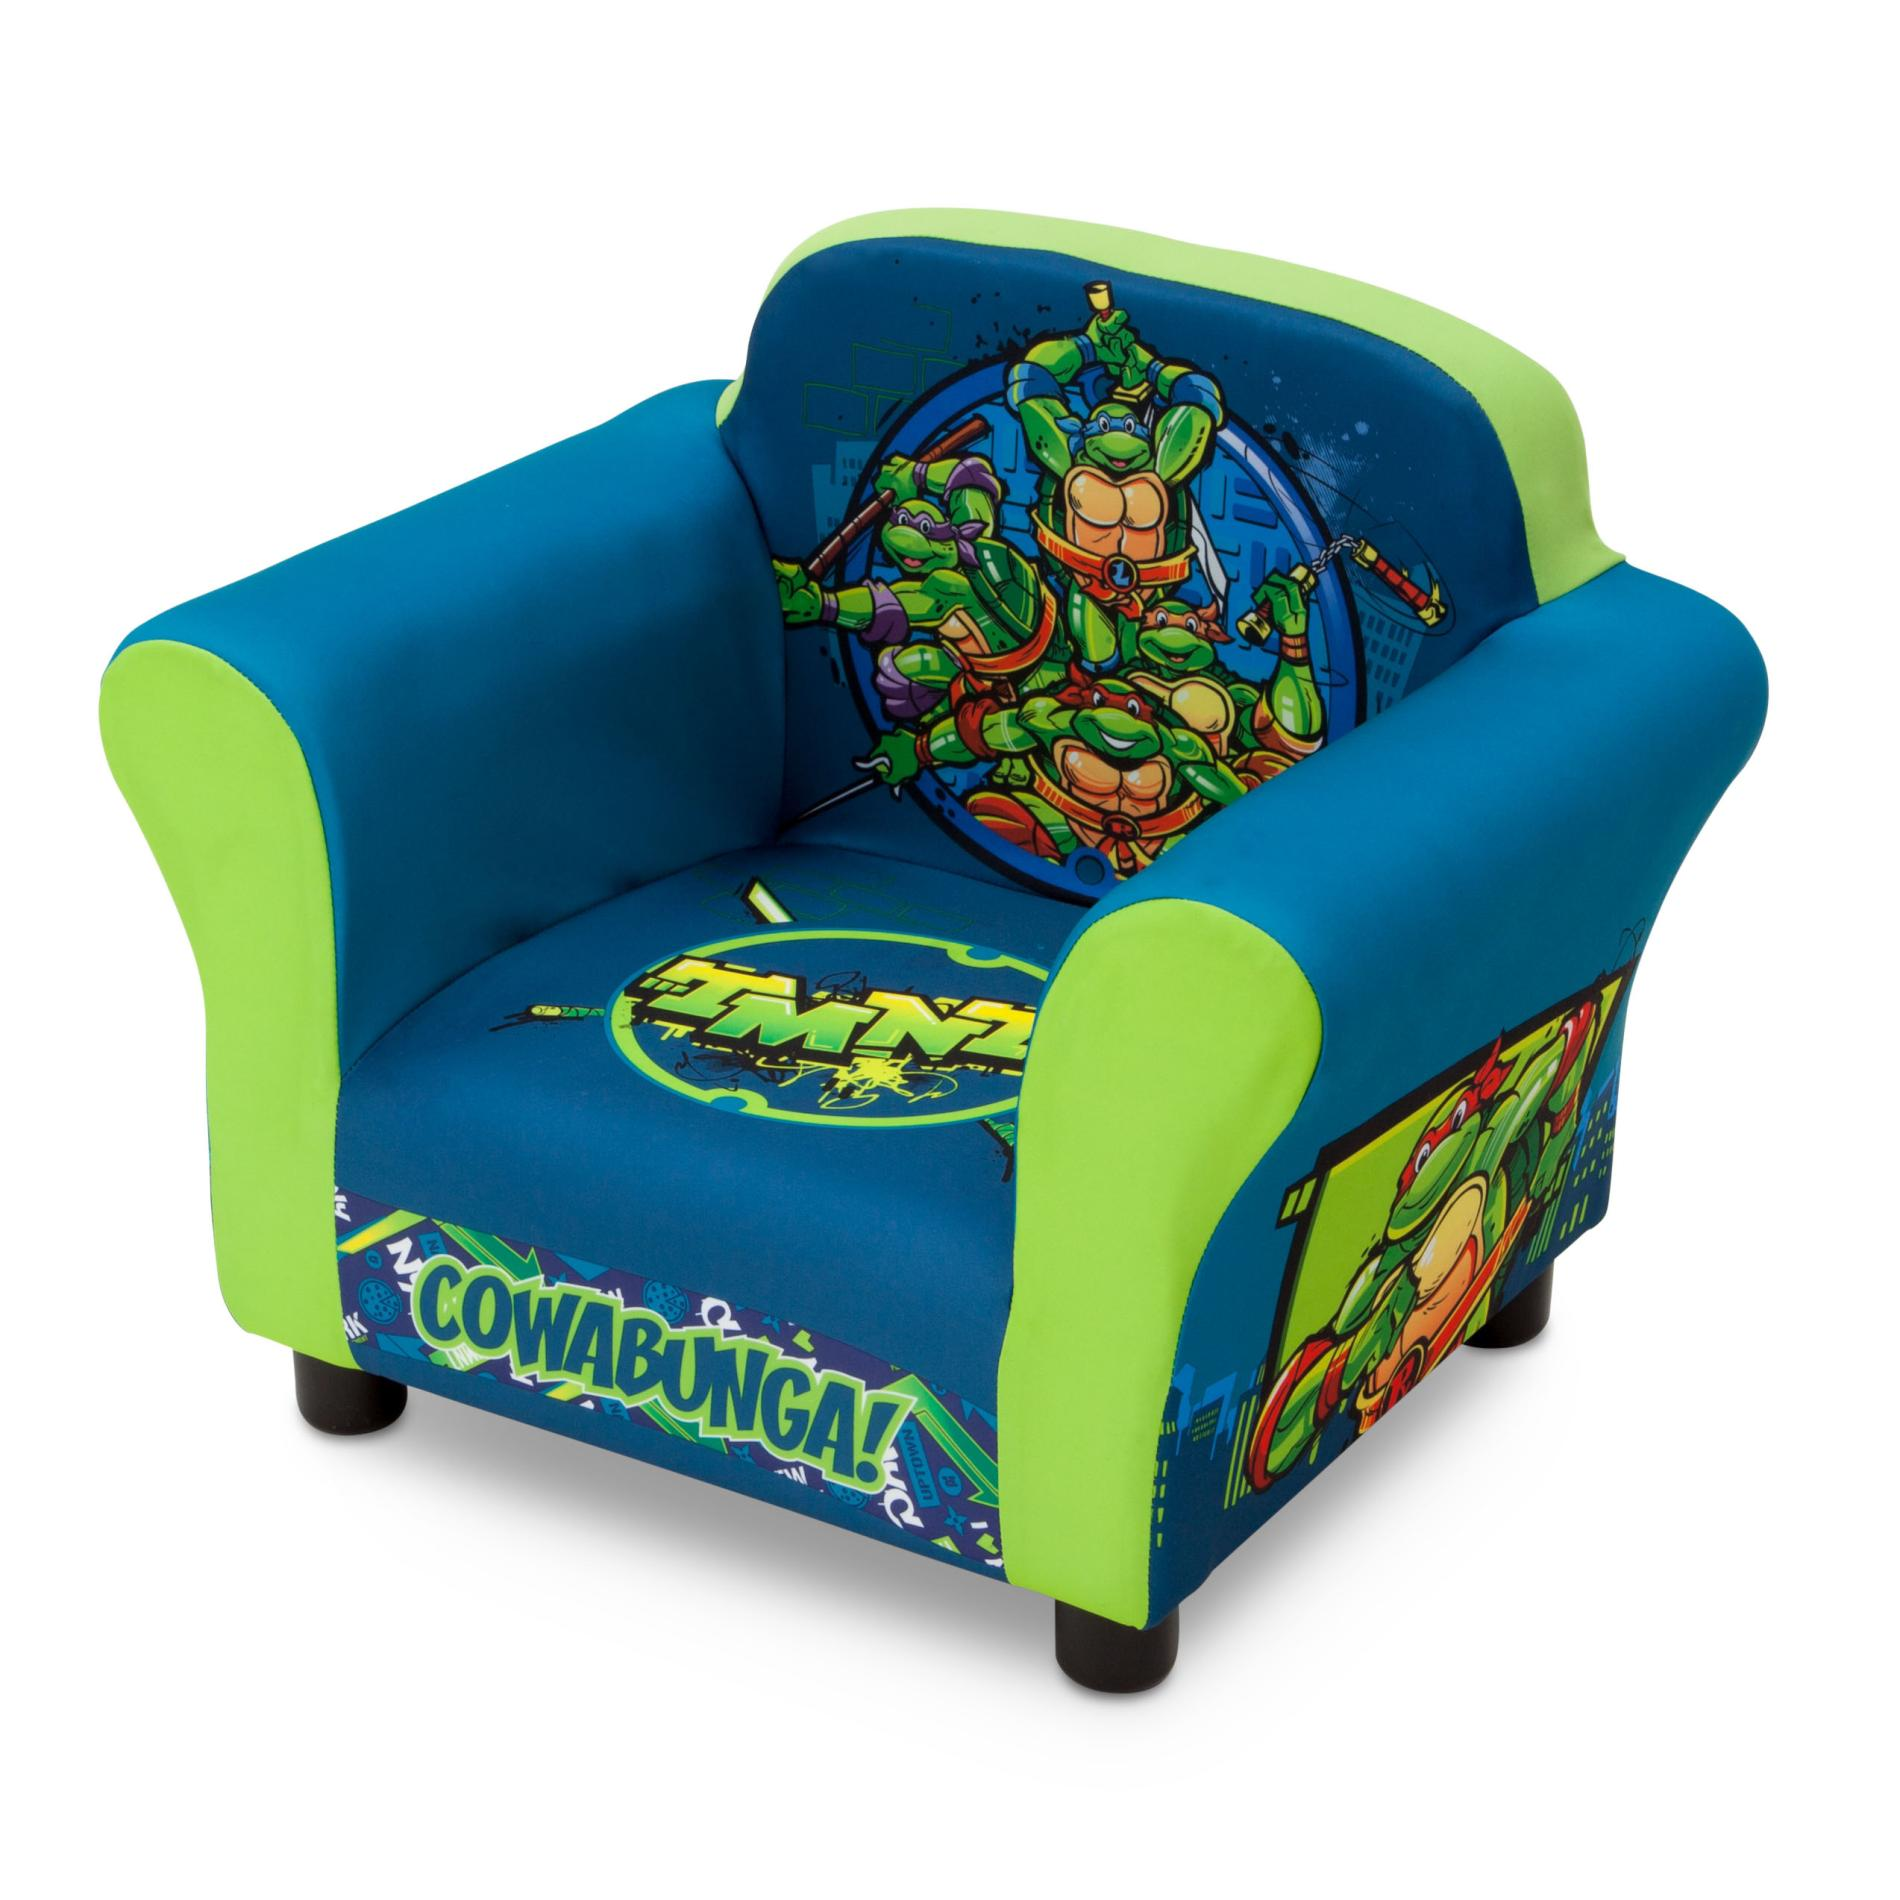 Toddler Boy Chair Nickelodeon Teenage Mutant Ninja Turtles Toddler Boy 39s